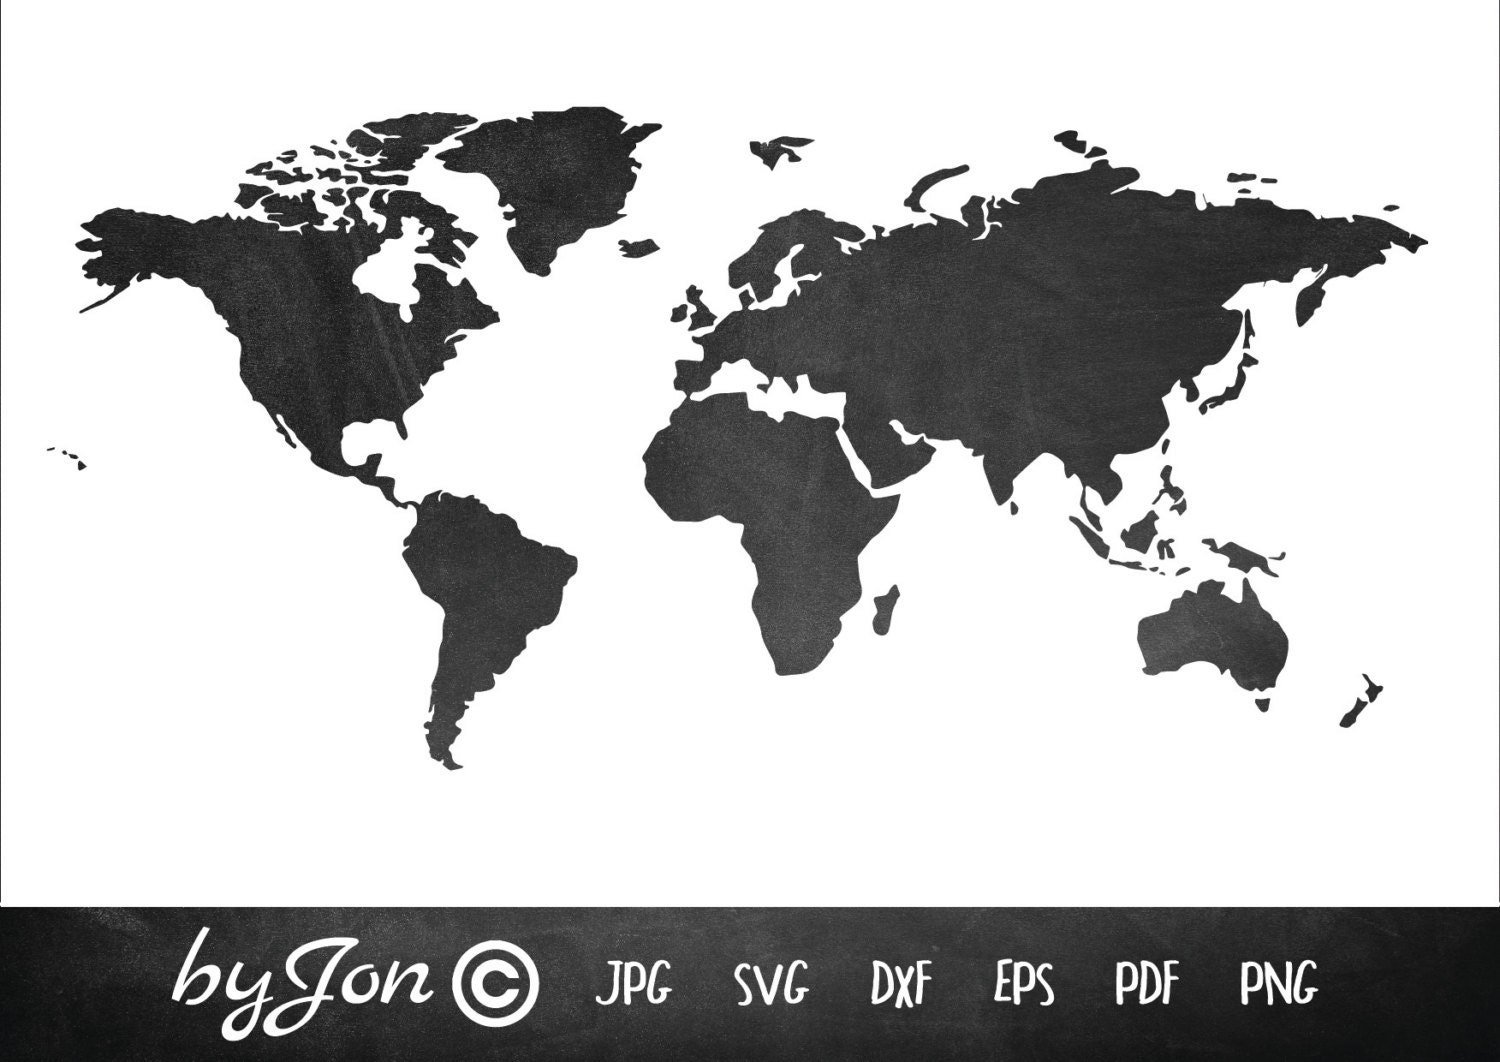 World Map Watermark.World Map Instant Download Cutting File For Silhouette Etsy